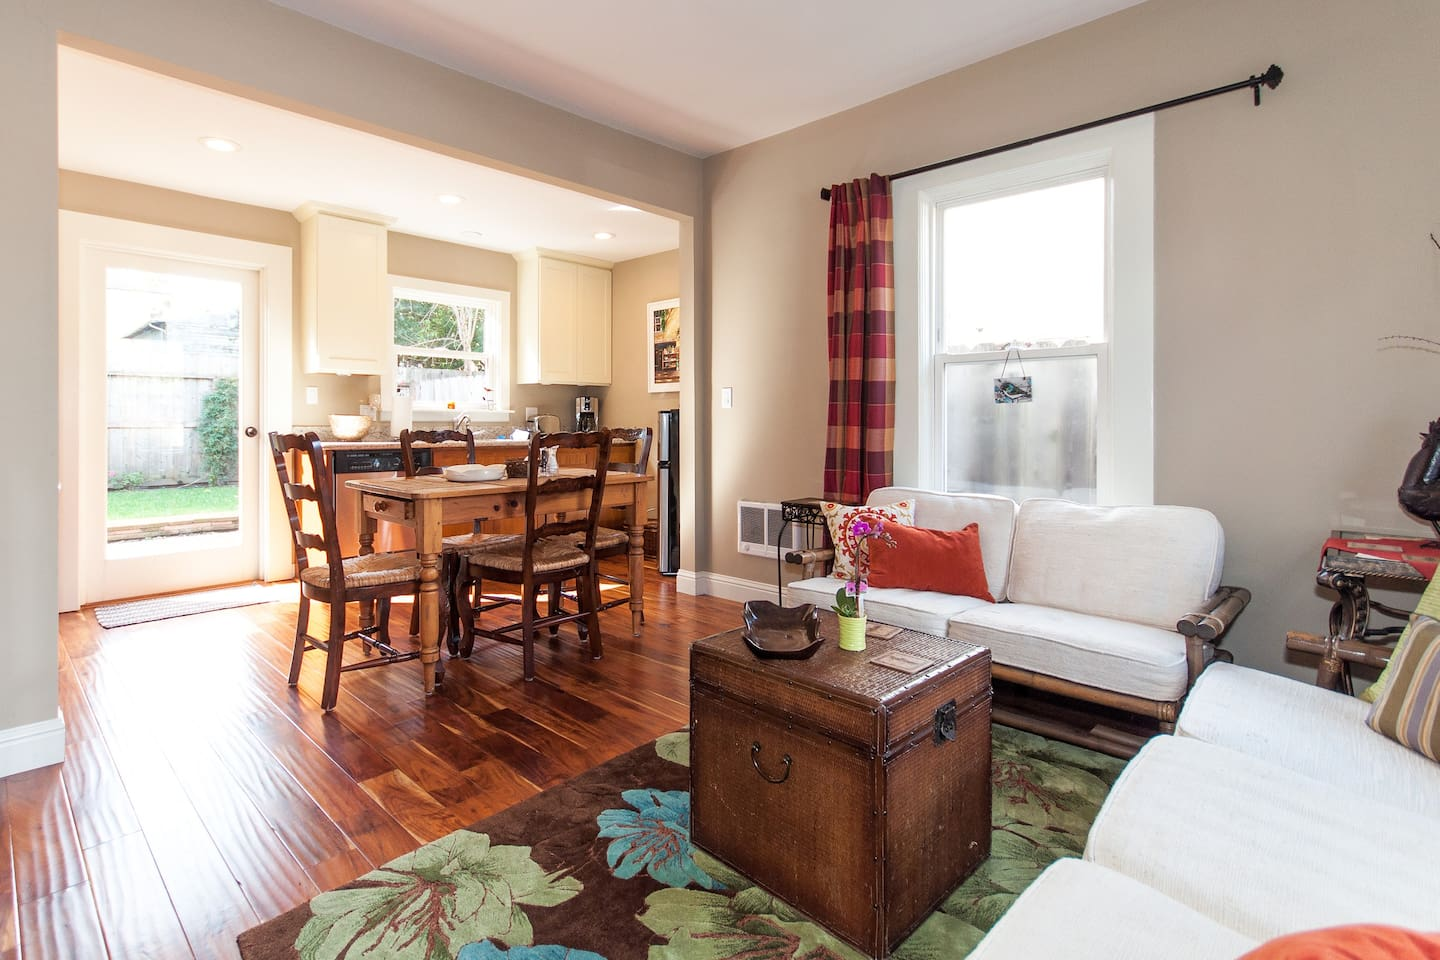 The living room area is open and bright with hardwood floors and plenty of comfortable seating.